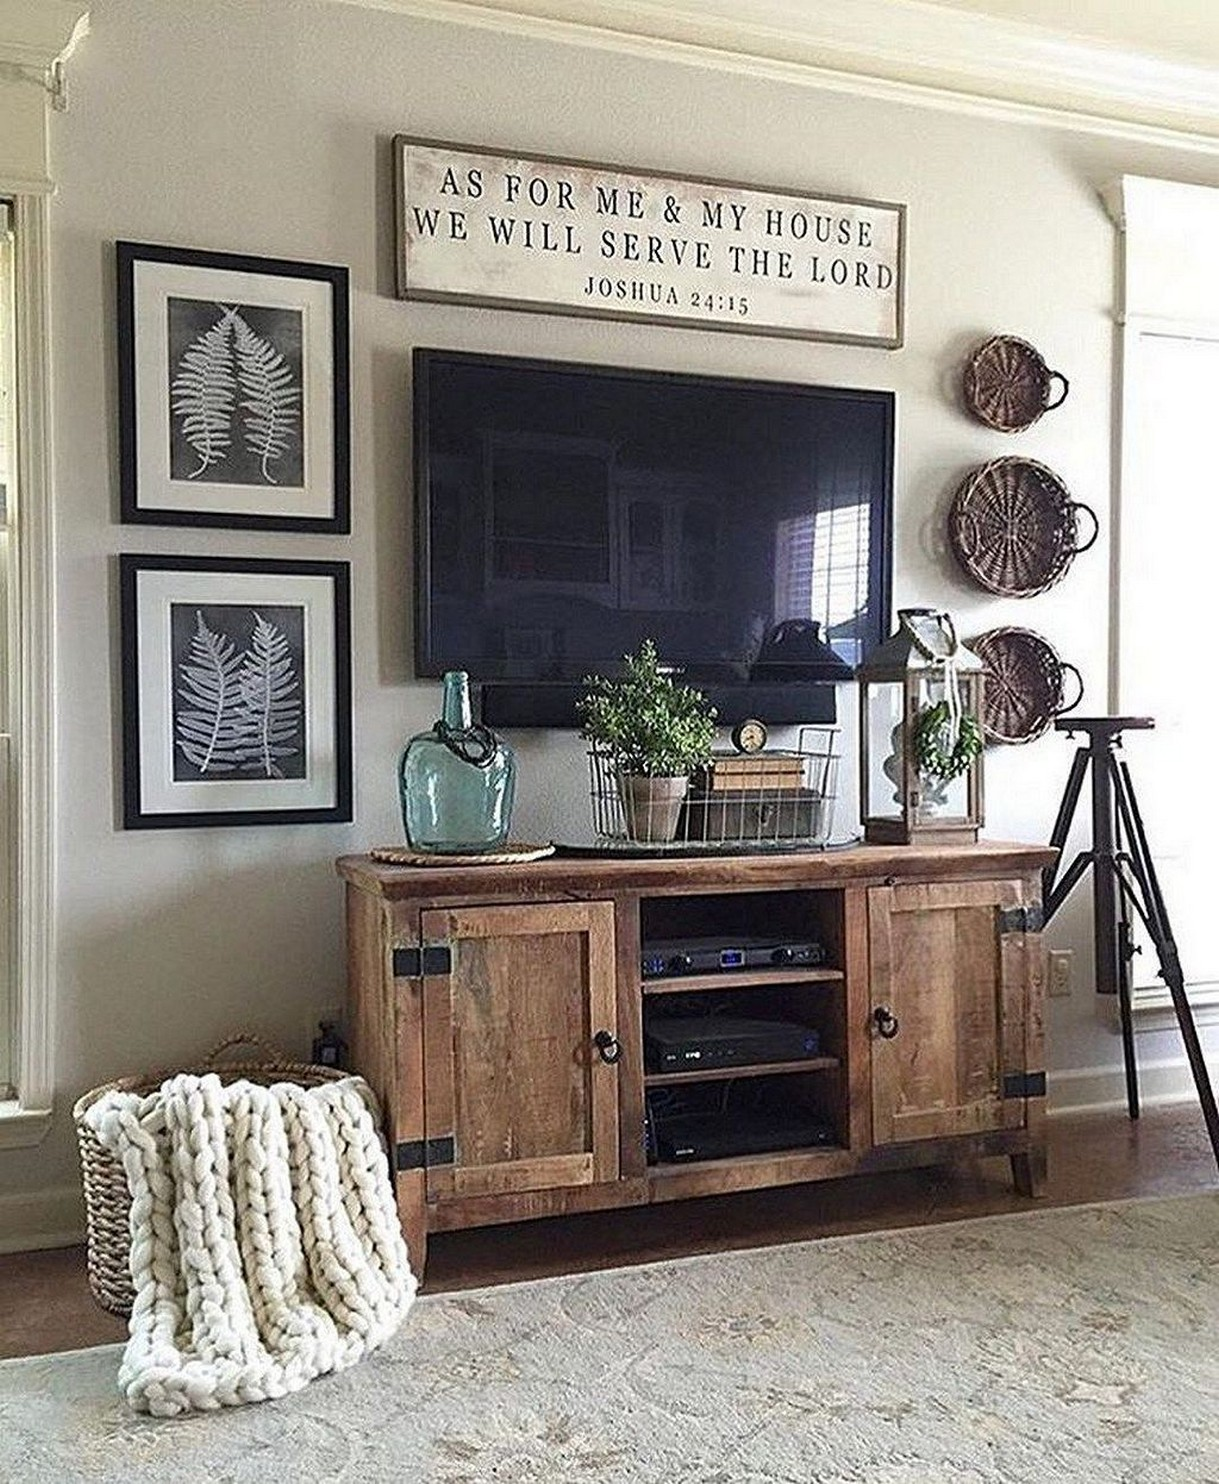 67 Rustic Home Decorating Ideas In 2020 Home Decor 39